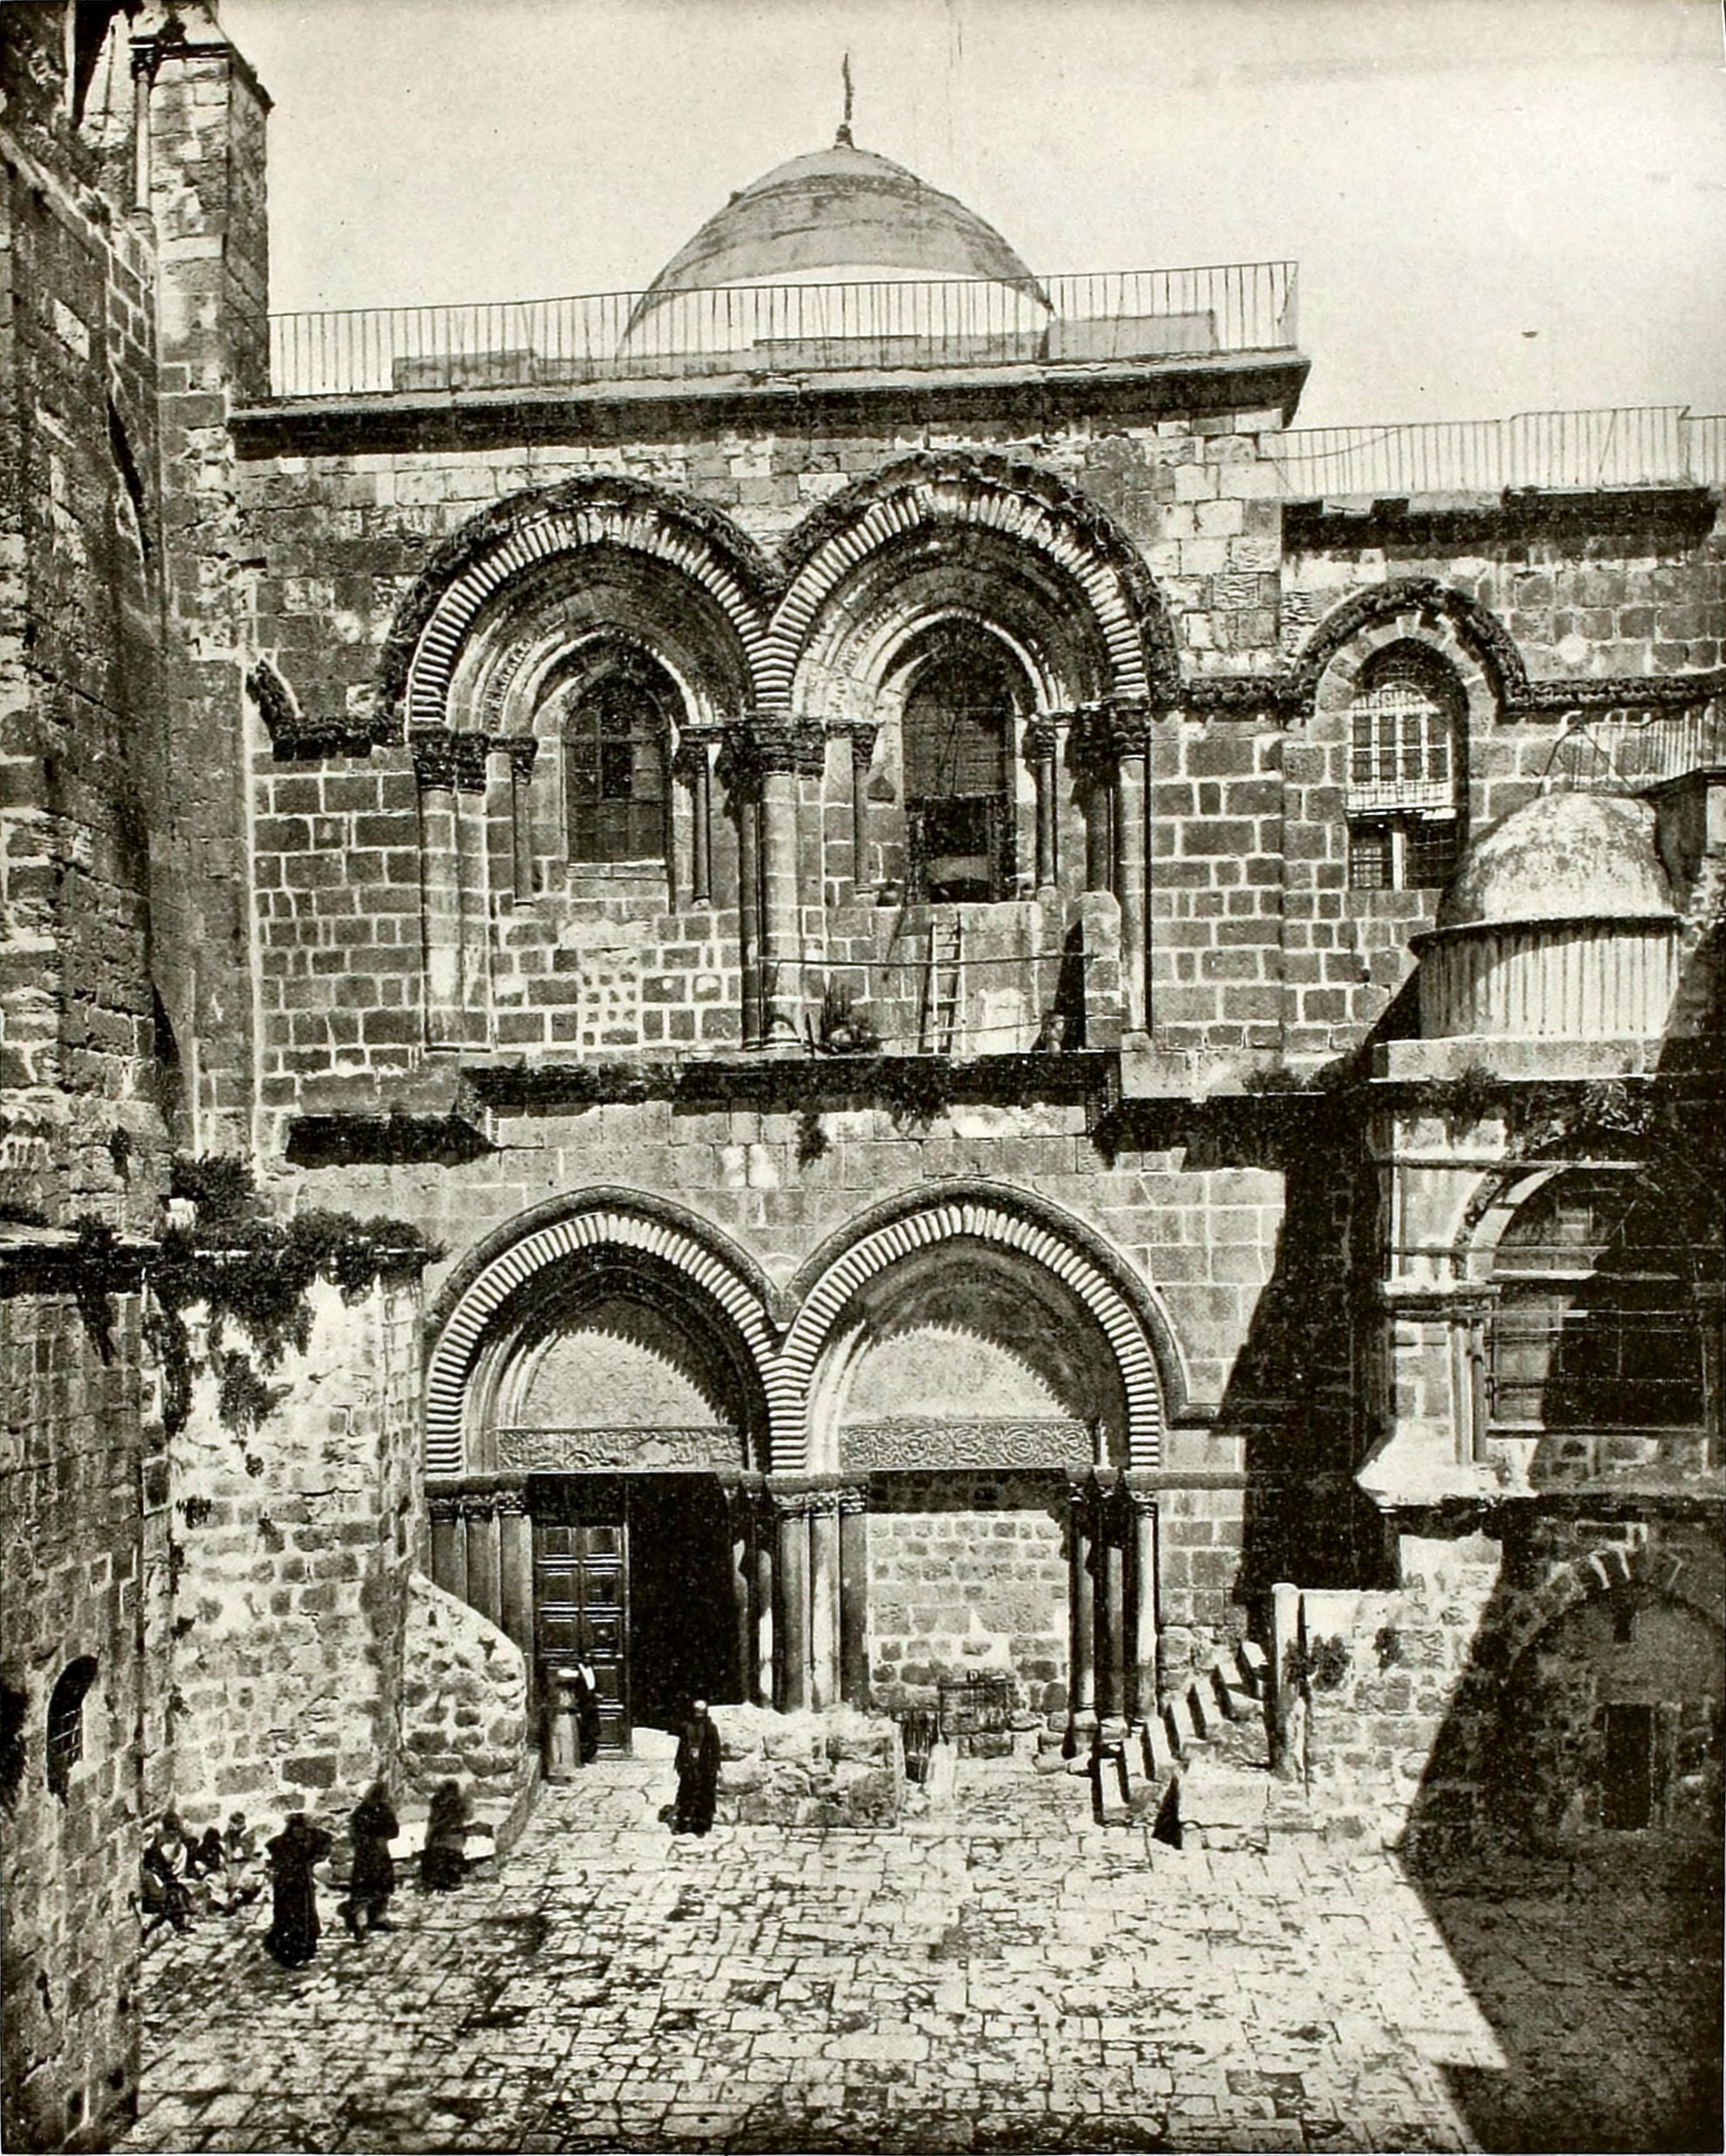 Church of the Holy Sepulchre, Jerusalem about 1892